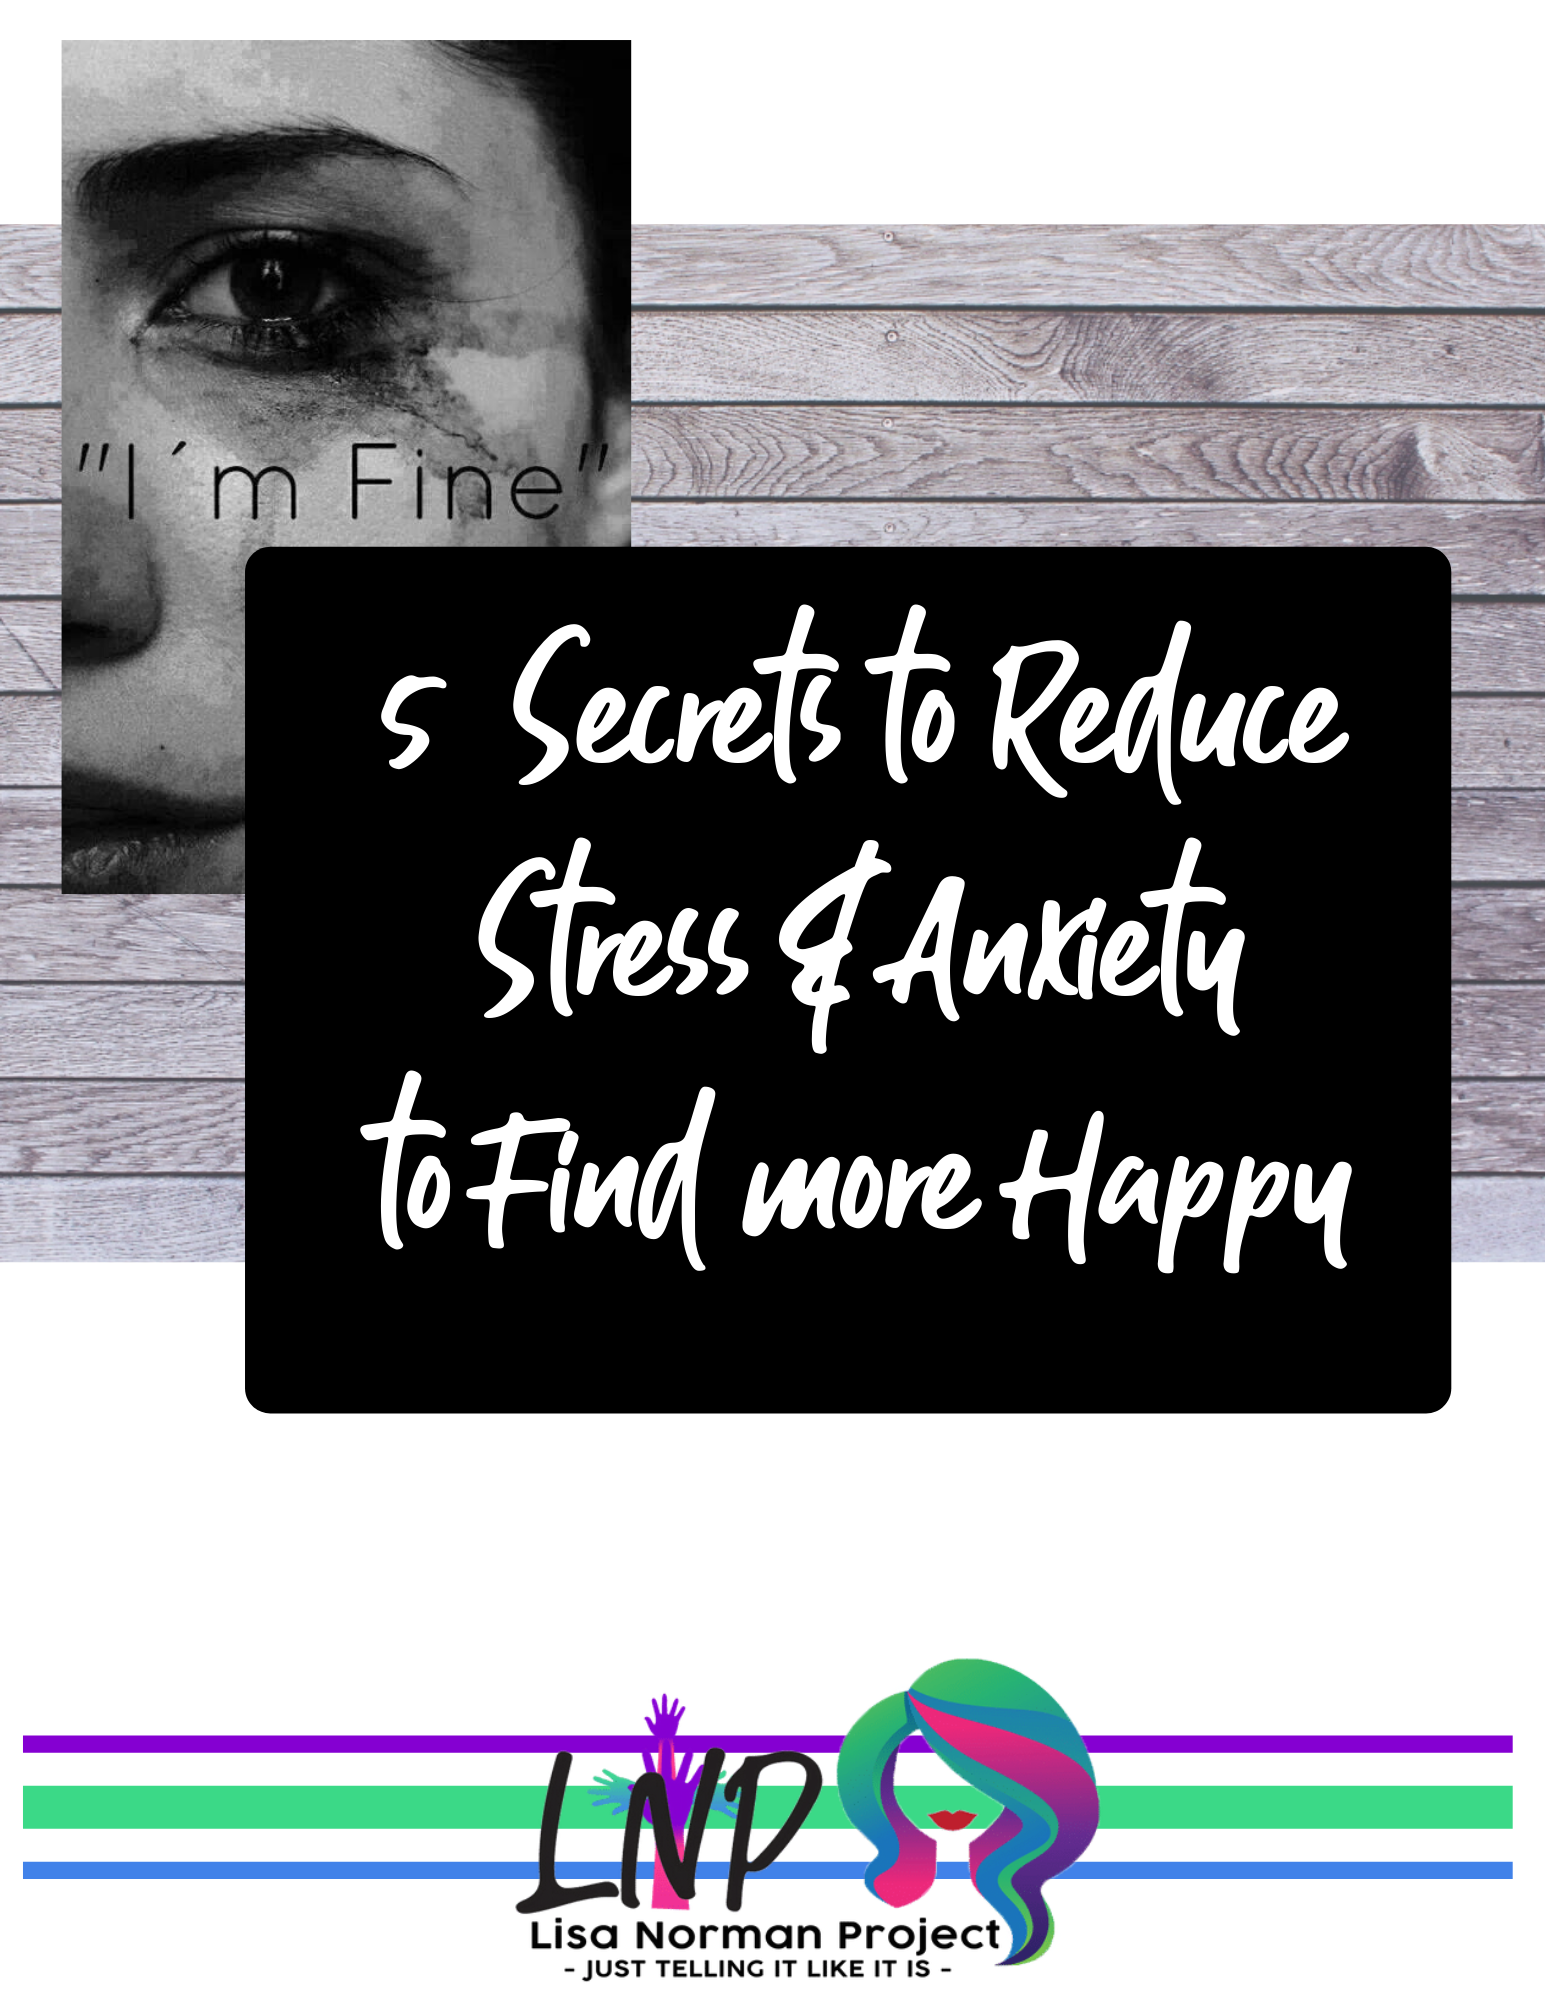 5 Secrets to Reduce Stress & Anxiety to find more Happy